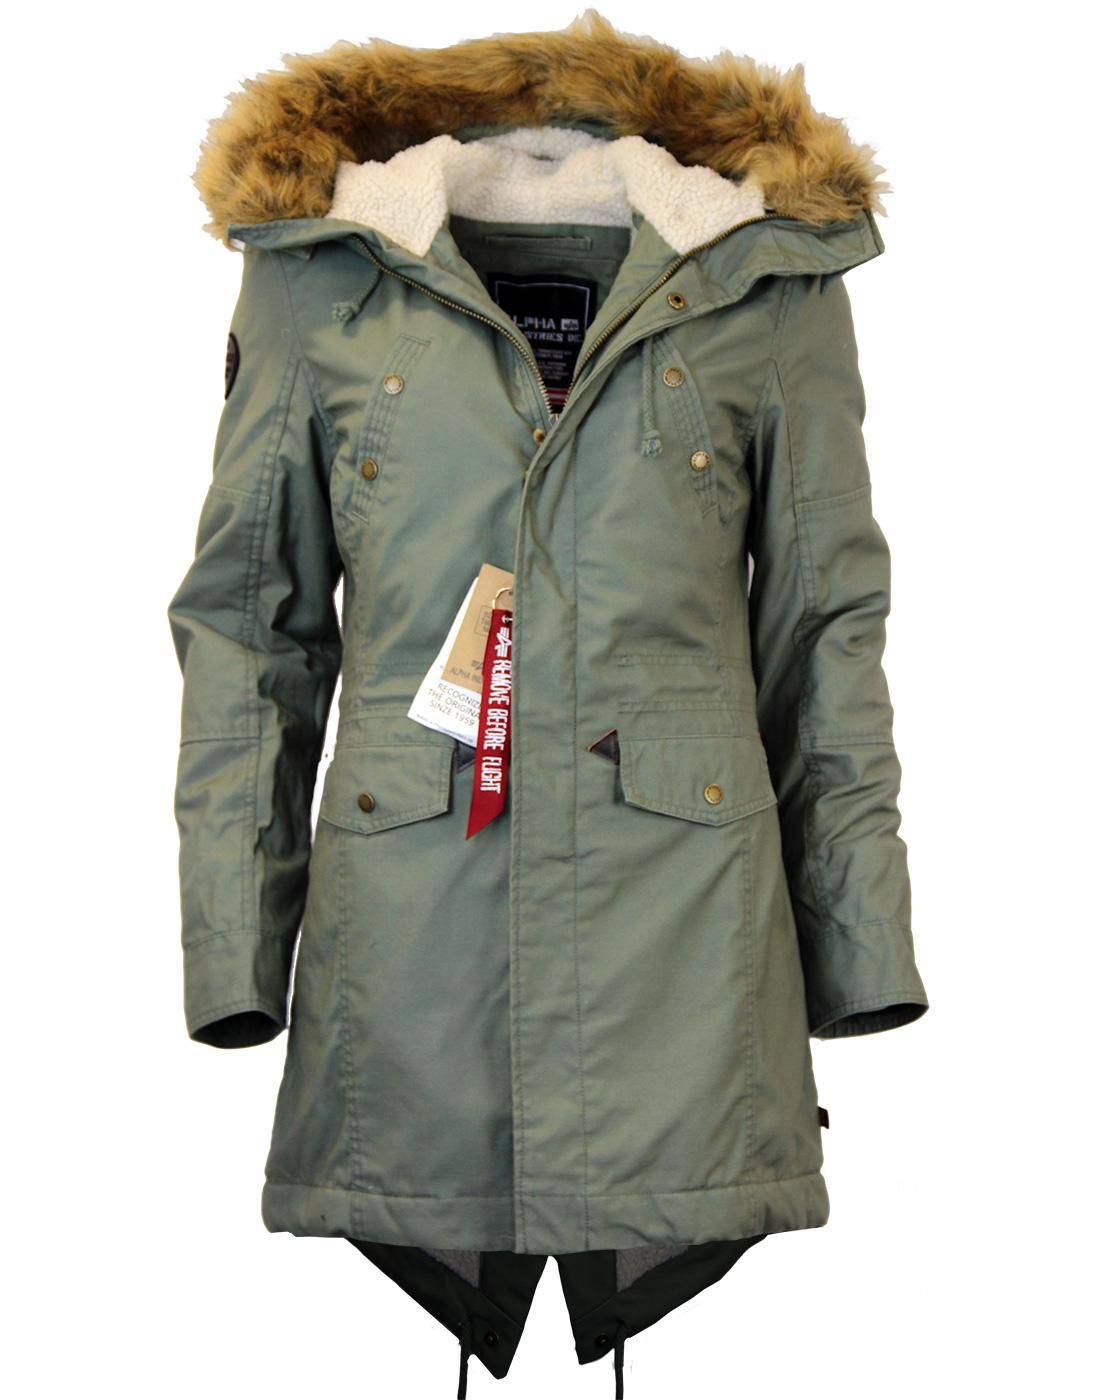 Womens Alpha Industries Hooded Fishtail Parka. Fully lined winter coat with  faux hood trim. - Womens Alpha Industries Hooded Fishtail Parka. Fully Lined Winter